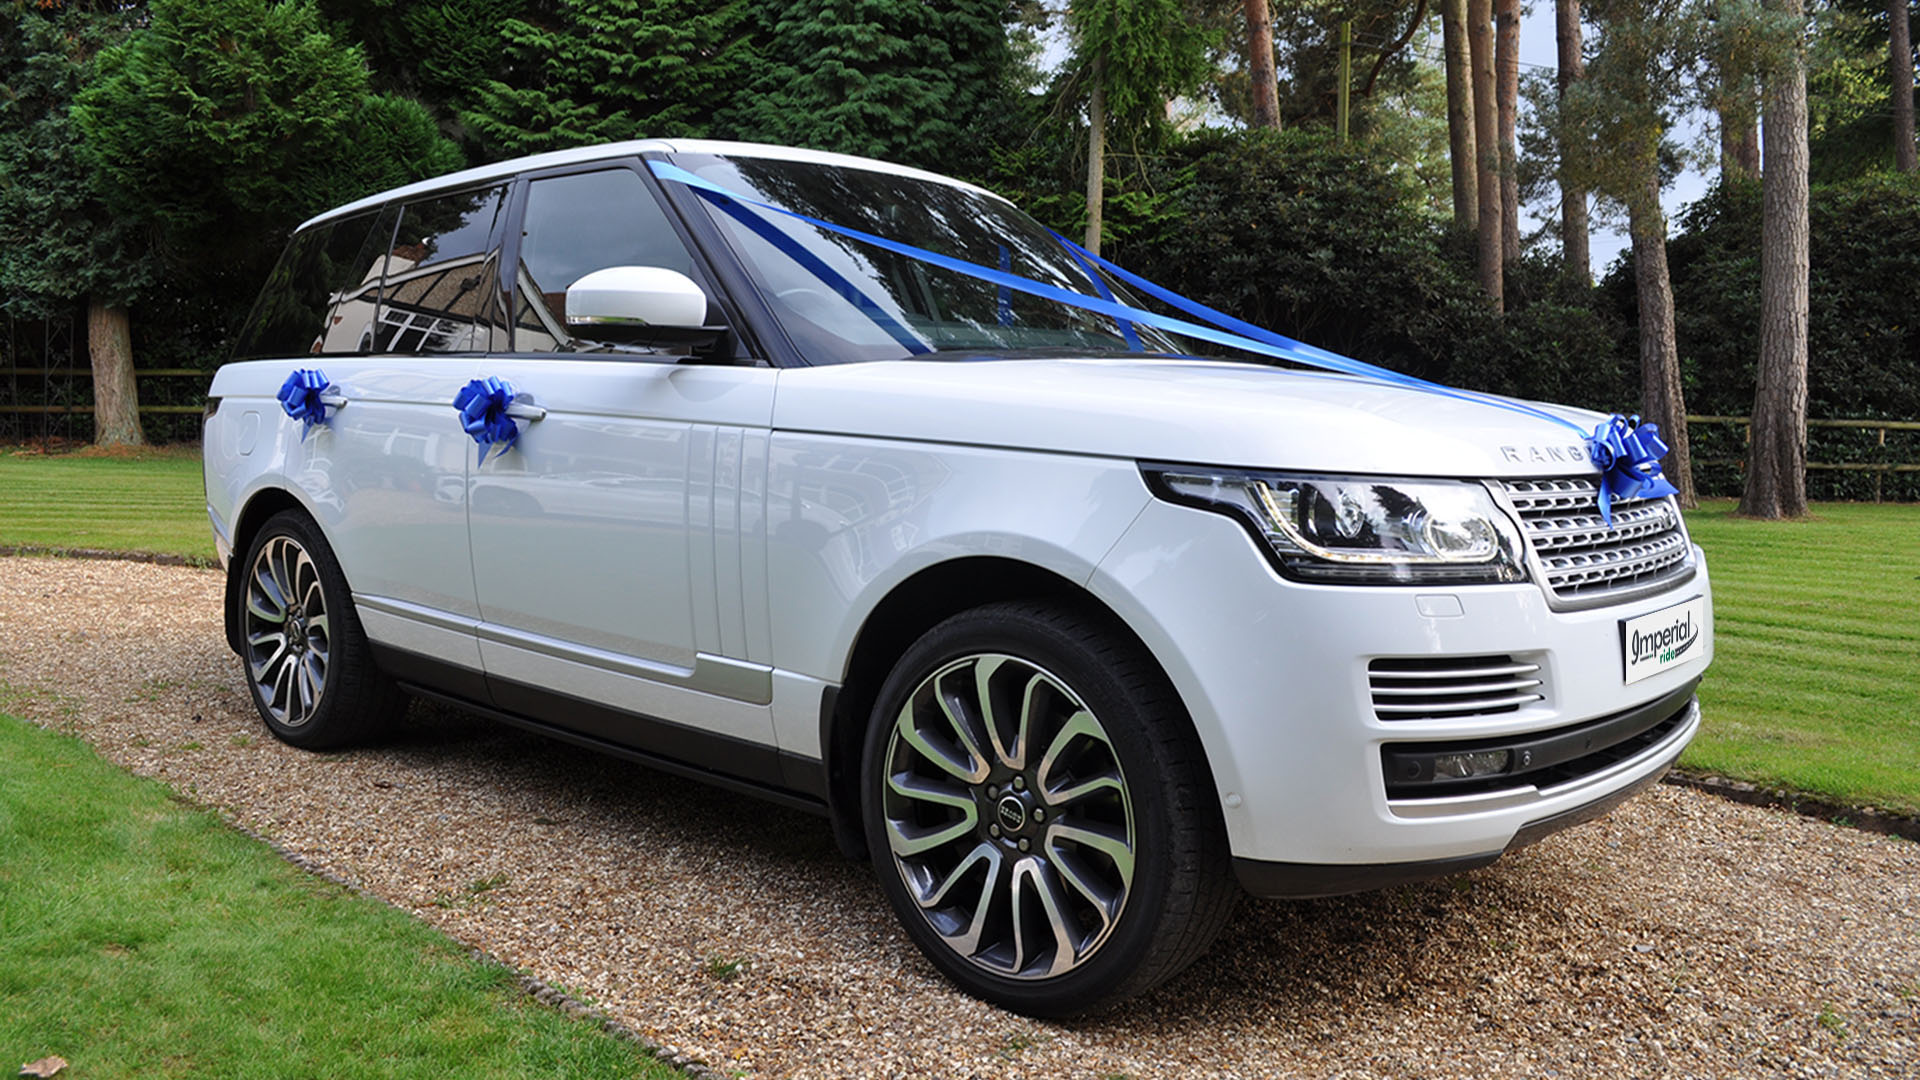 range-rover-wedding-hire-in-richmond-upon-thames